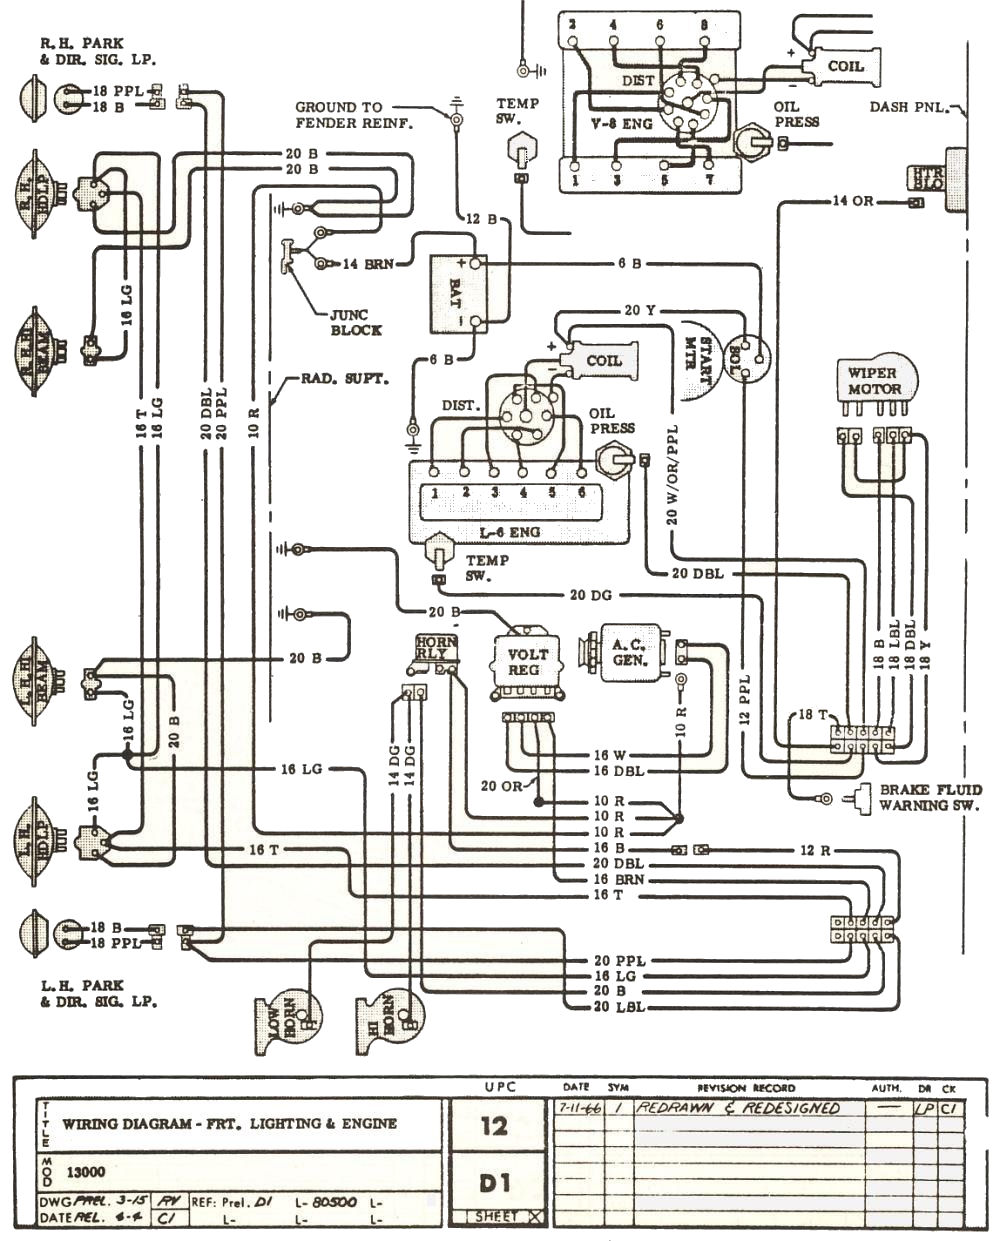 1967 gto dash wiring diagram